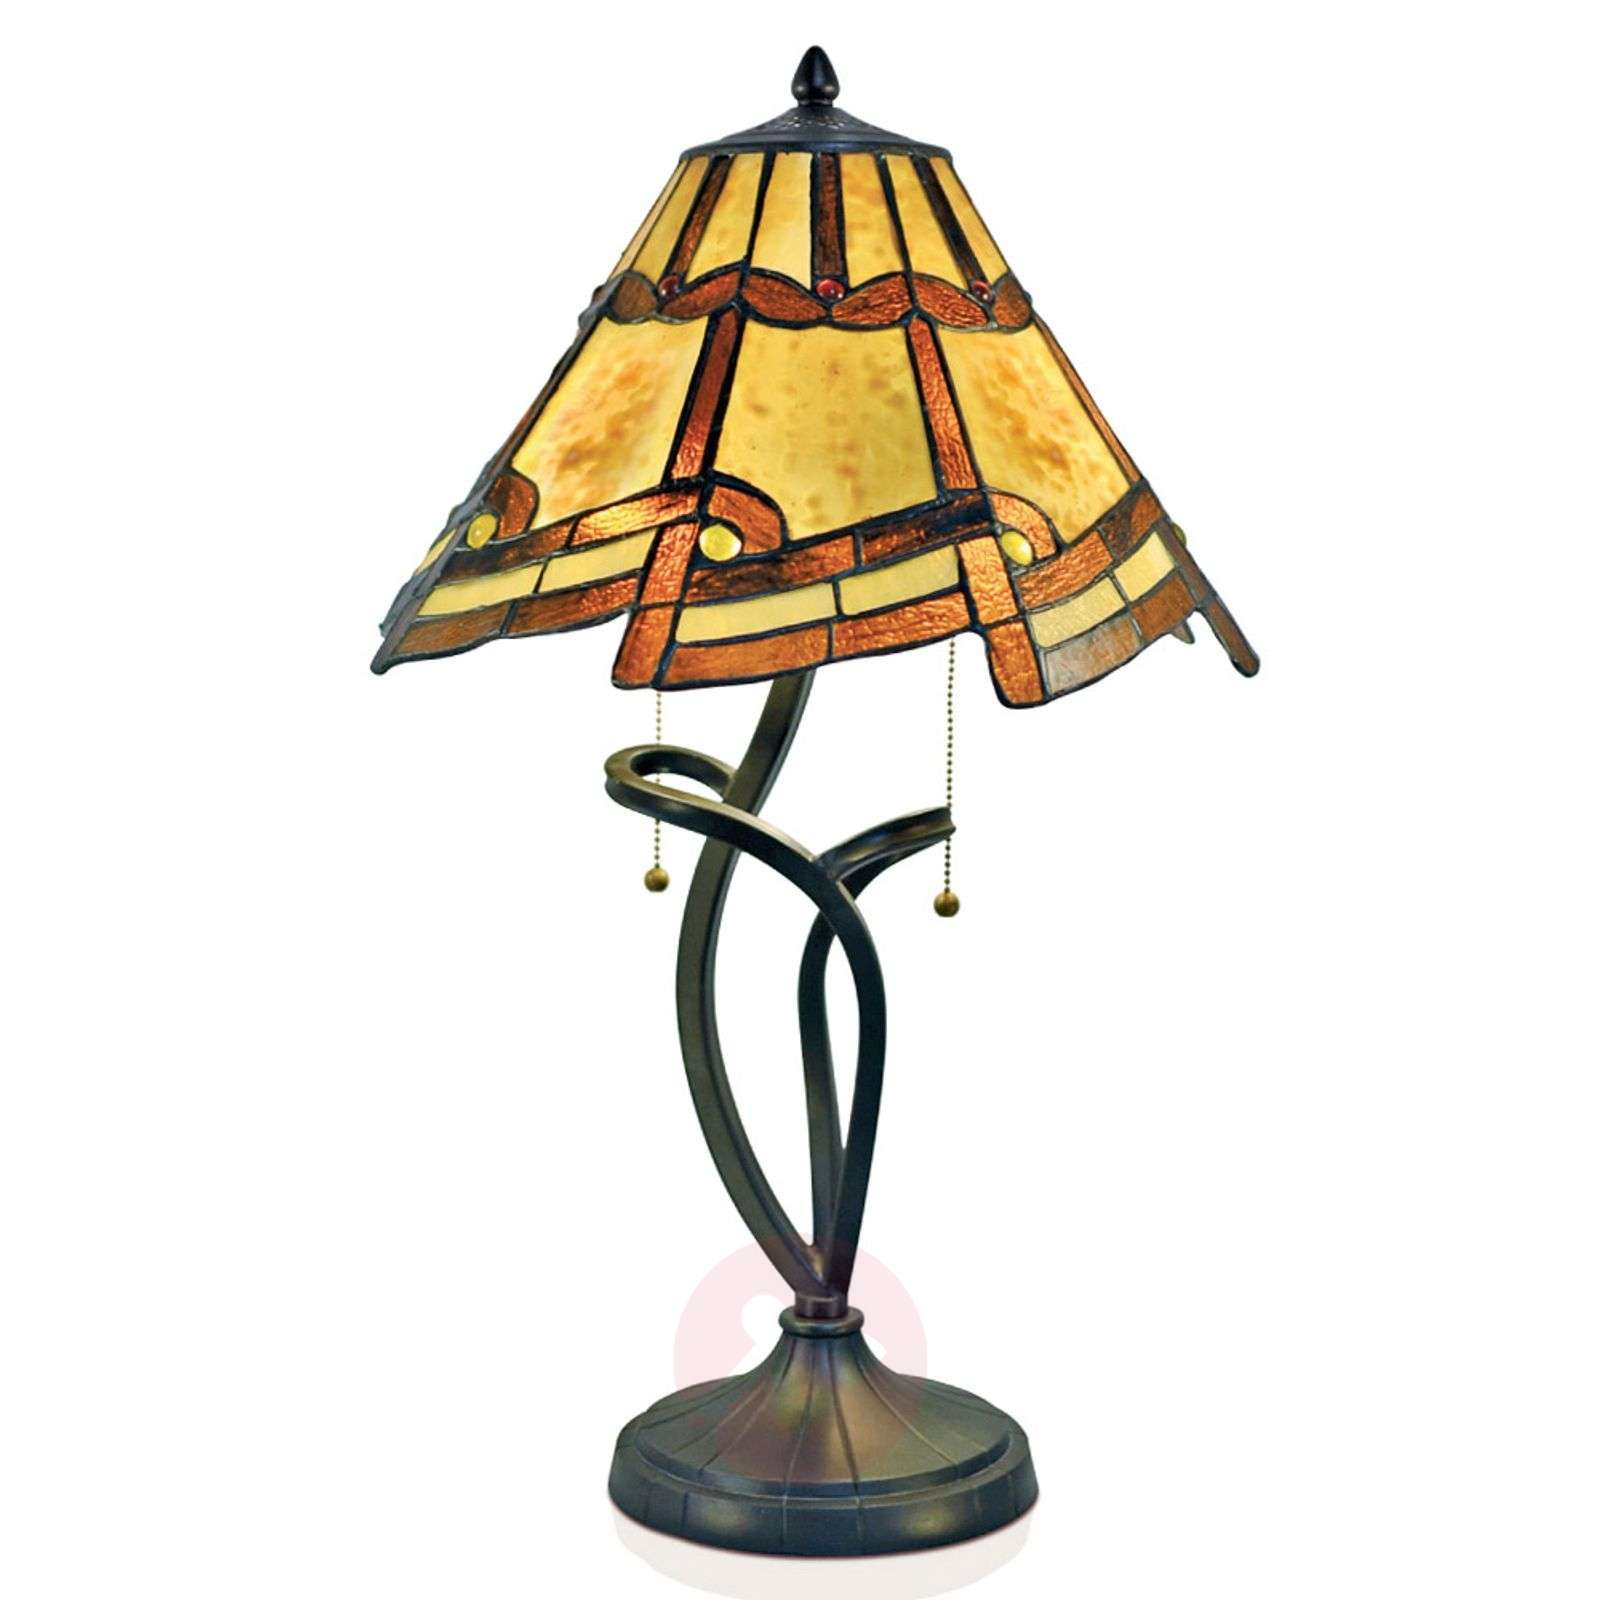 Betoverende hanglamp Parisa in Tiffany-stijl-1032320-01